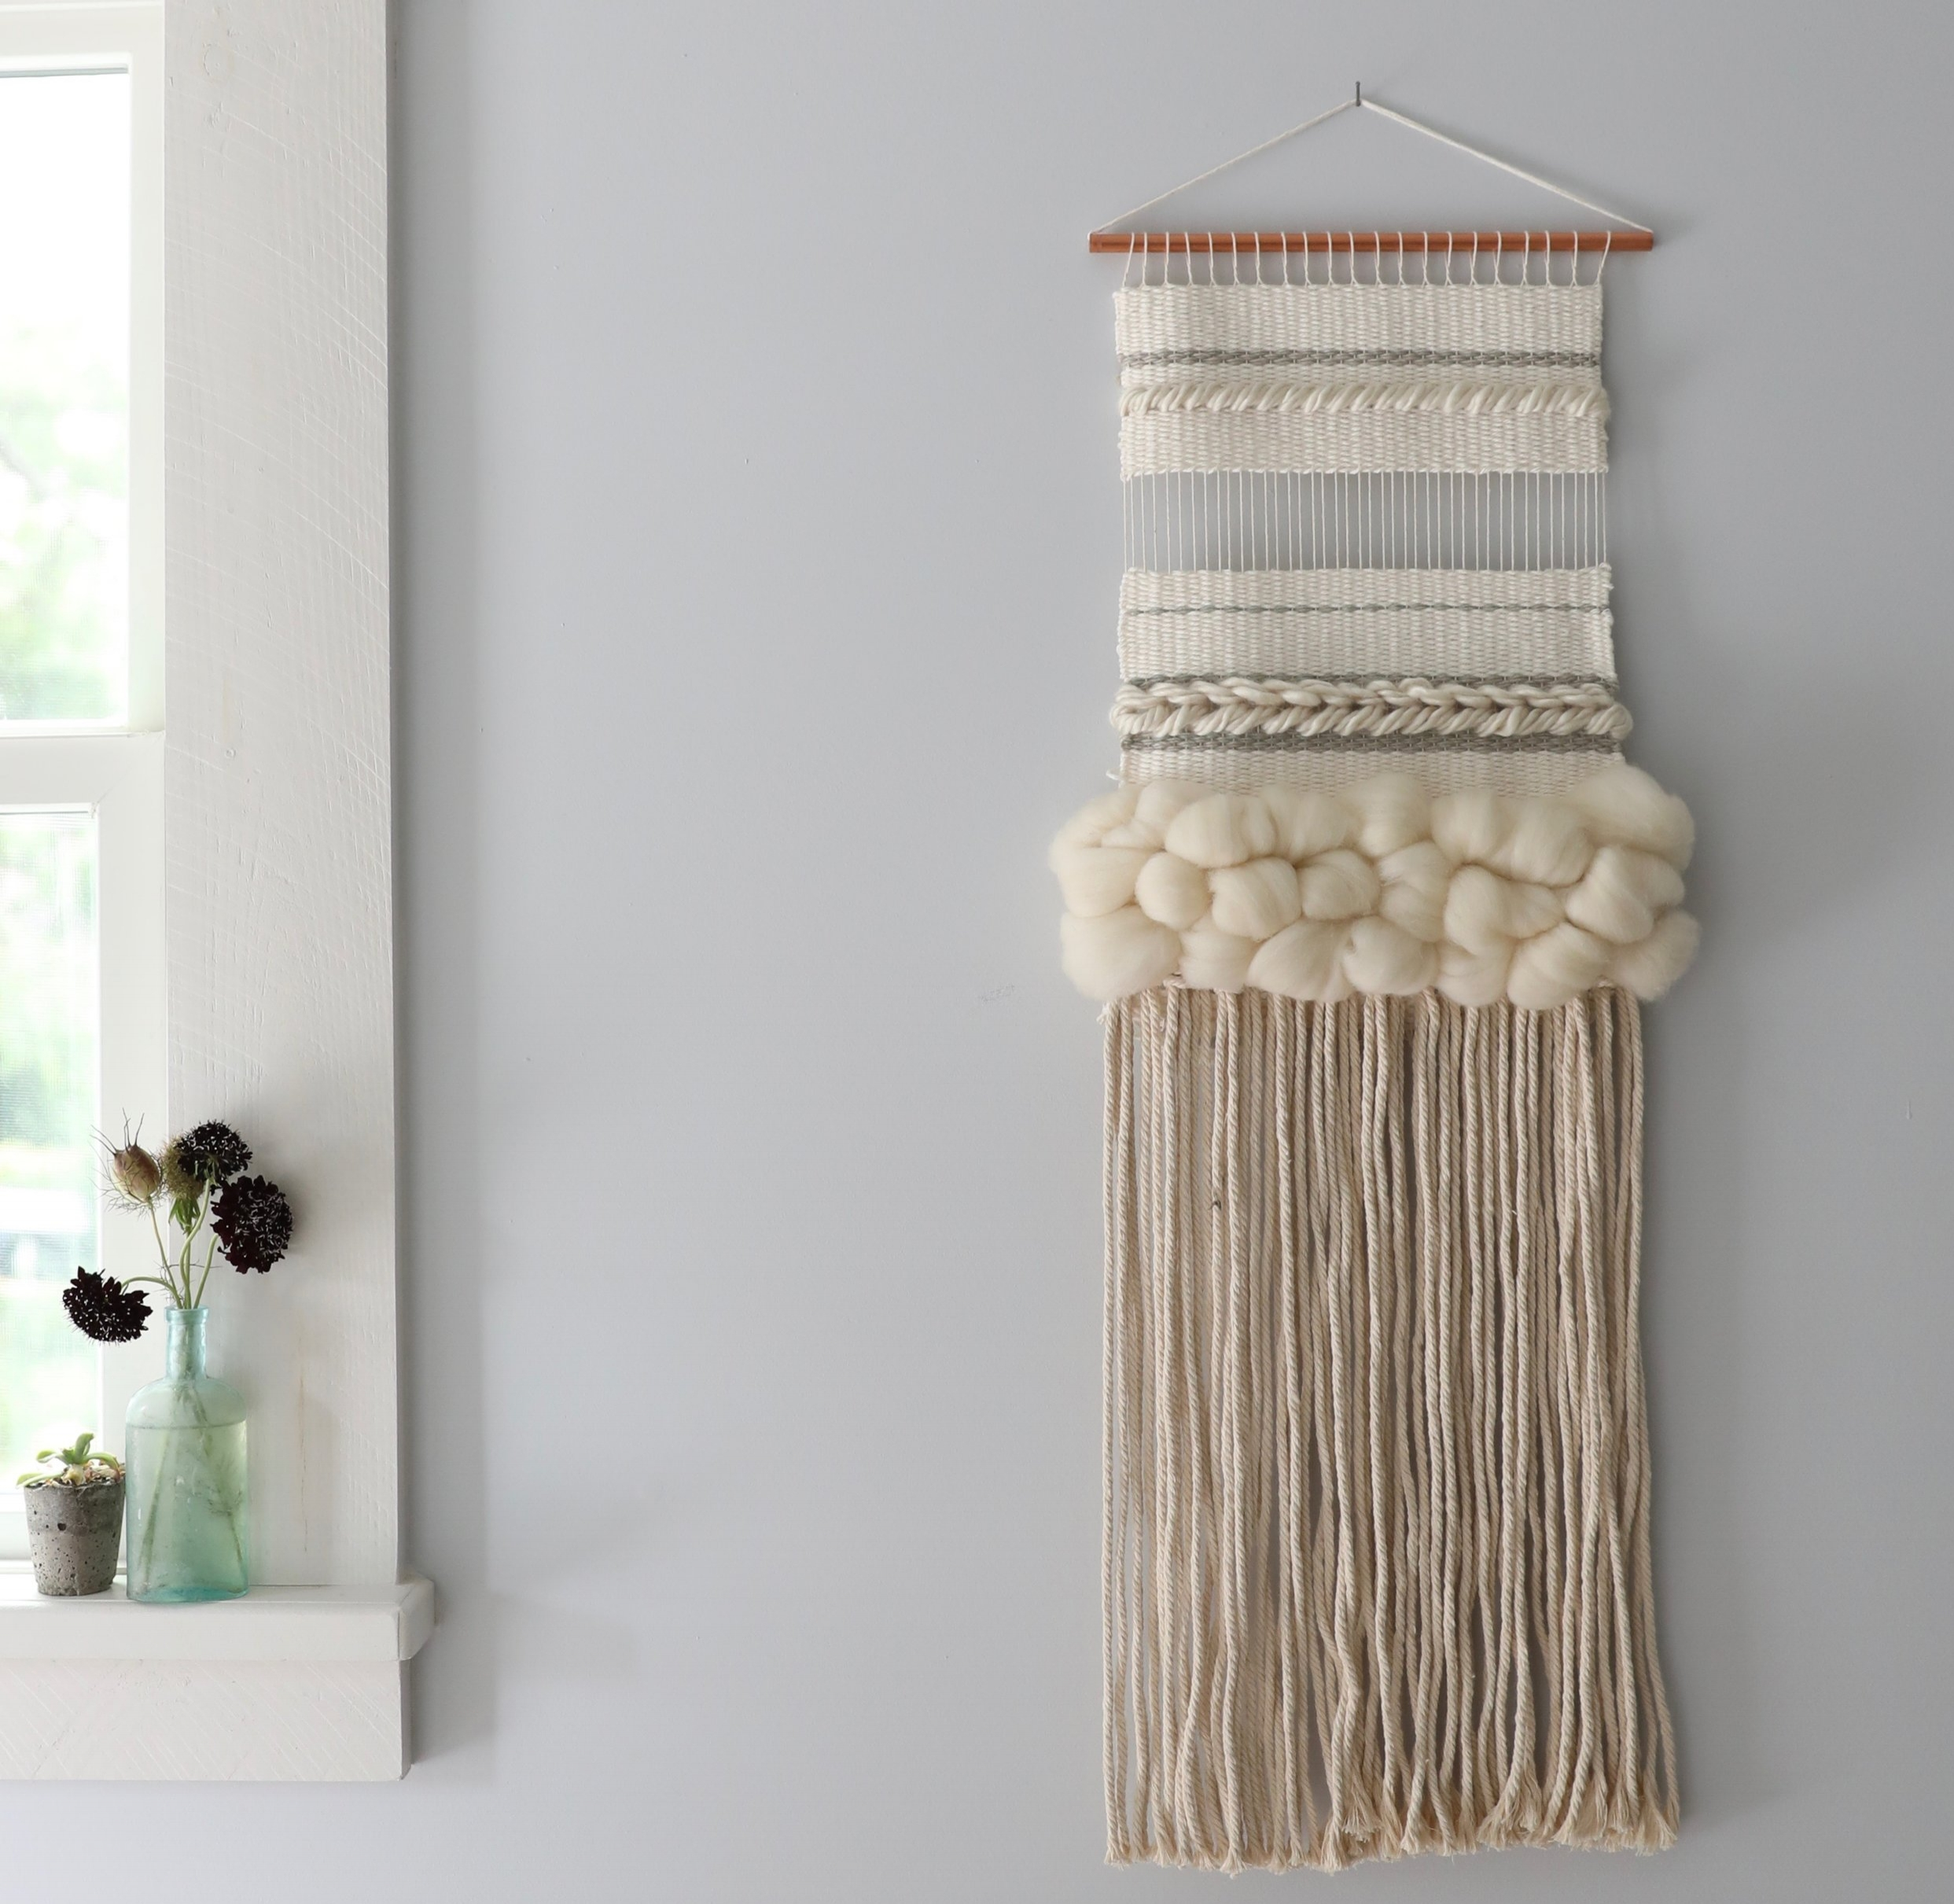 FEED WEAVE - ORDER A CUSTOM WEAVING USING FOOD WASTE AS DYE BATHS10% off our sales from feed weave go to community kitchens & non-profits that promote sustainable farming